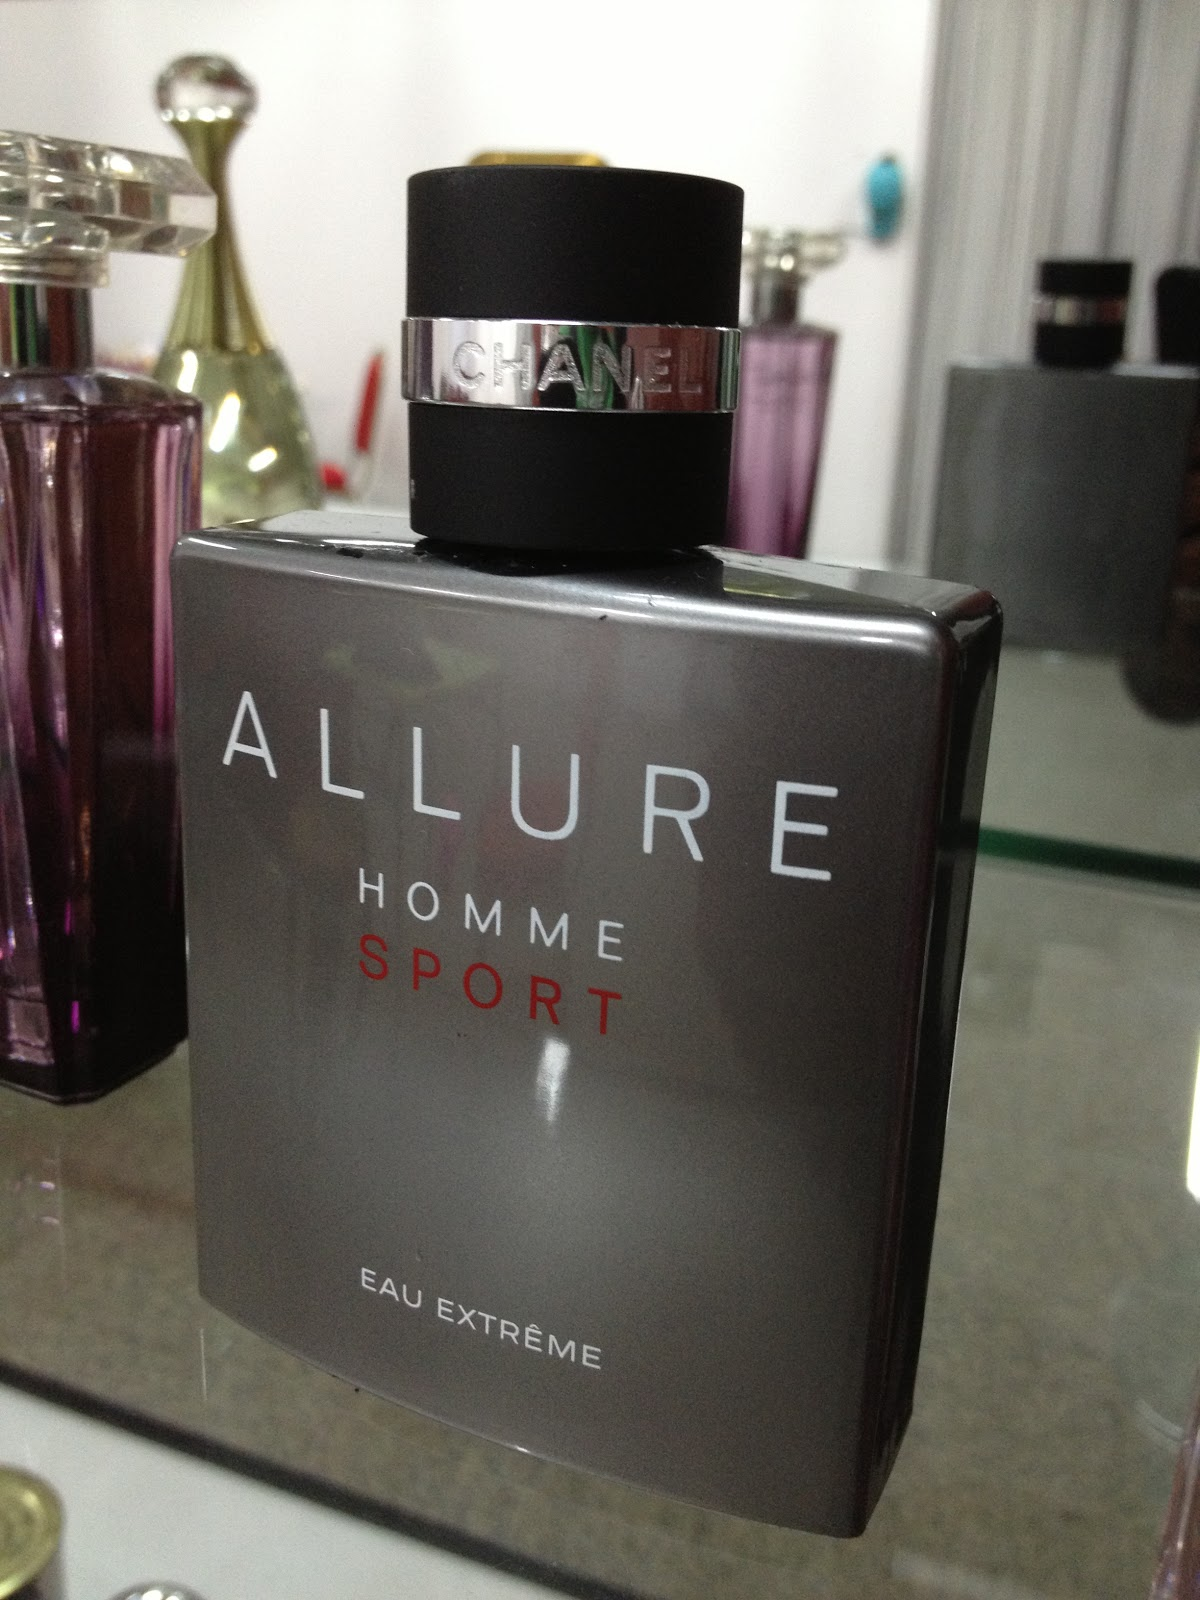 Allure Homme Sport Strictly For Perfume Lover Allure Homme Sport Eau Extreme